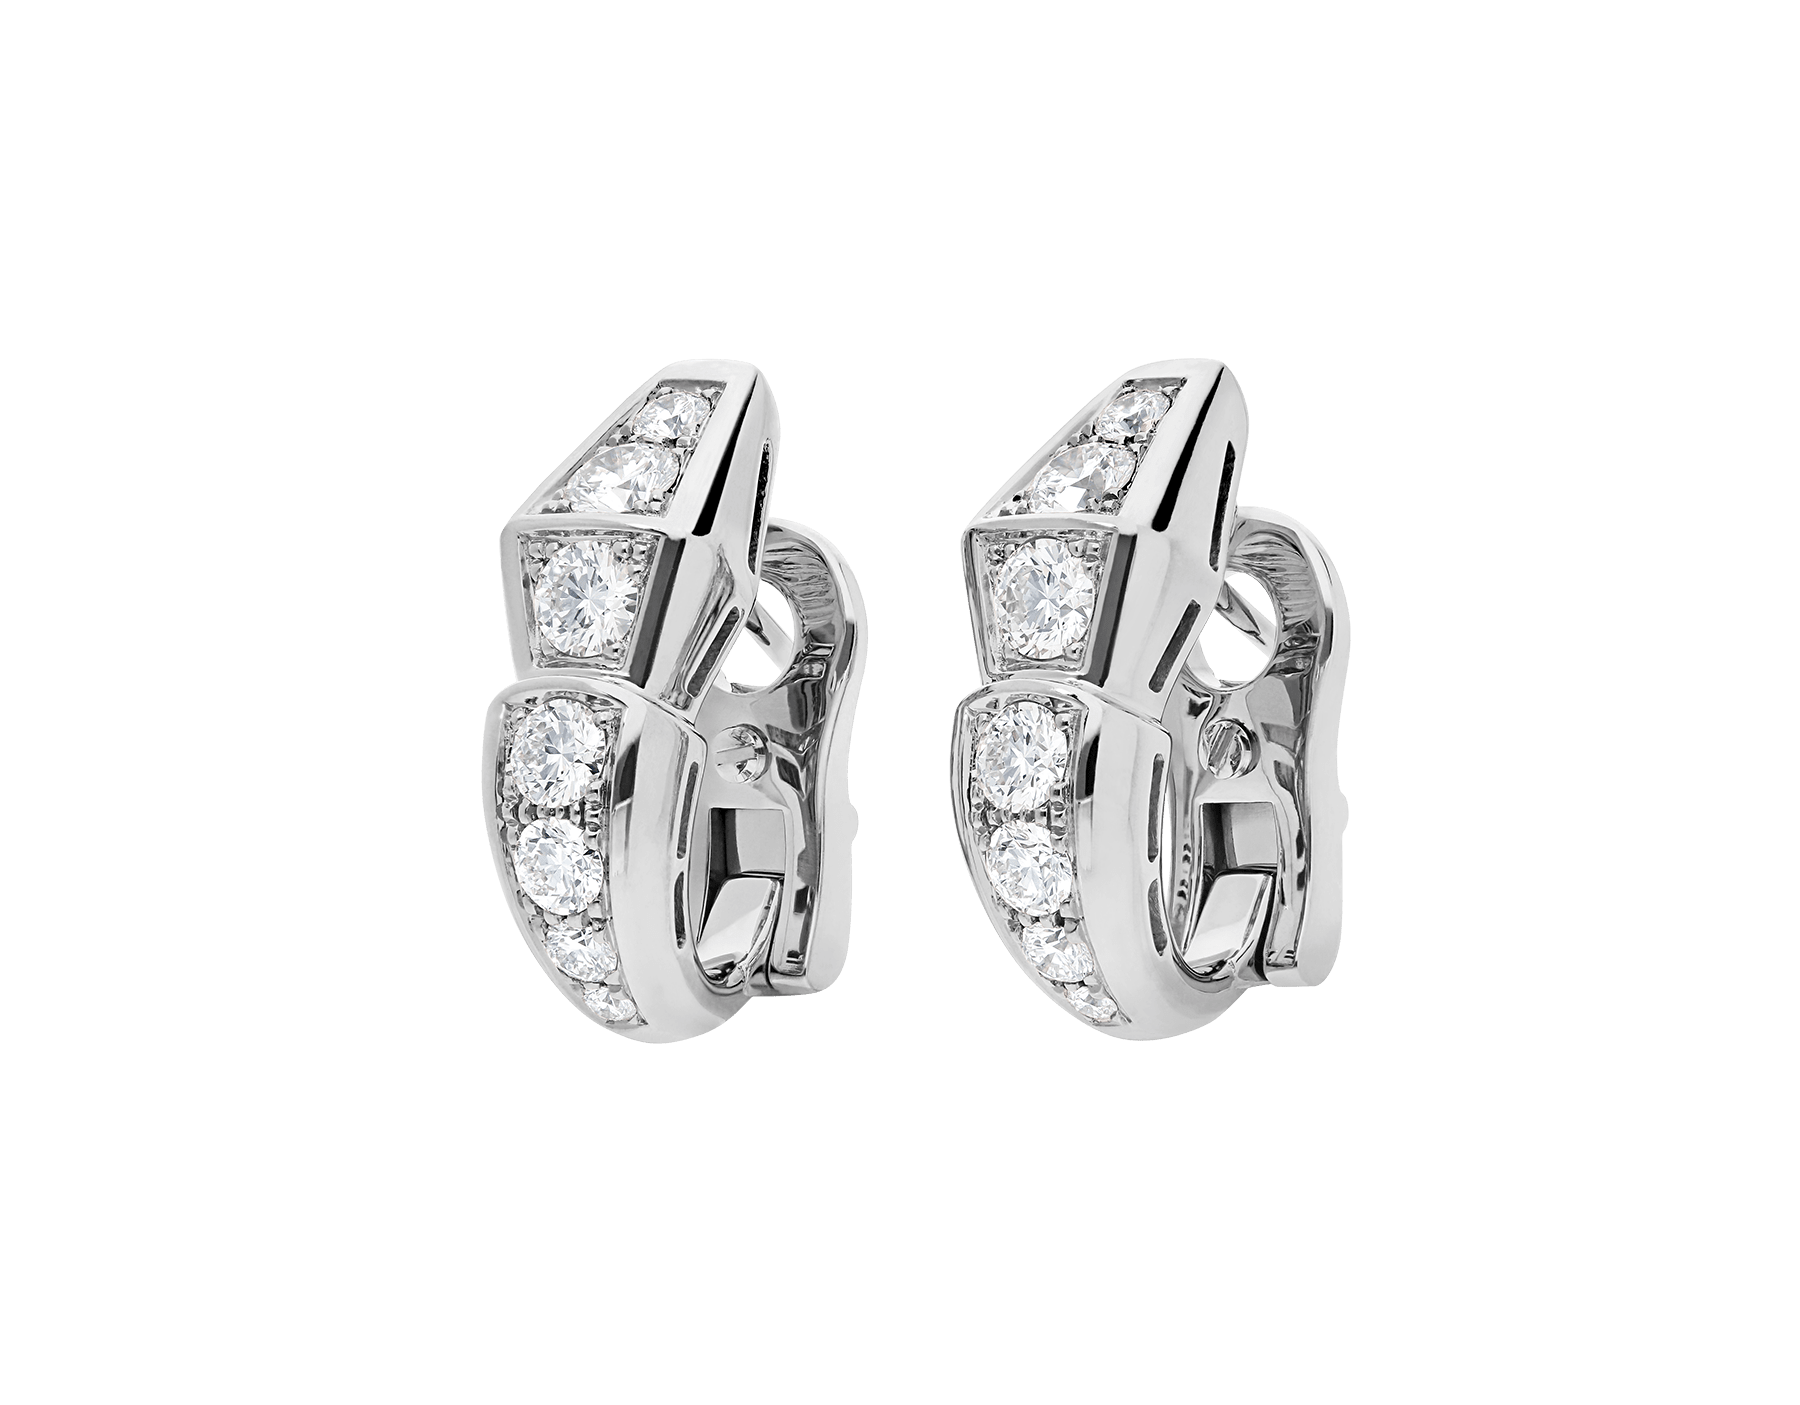 Serpenti slim earrings in 18 kt white gold, set with full pavé diamonds. 351426 image 2